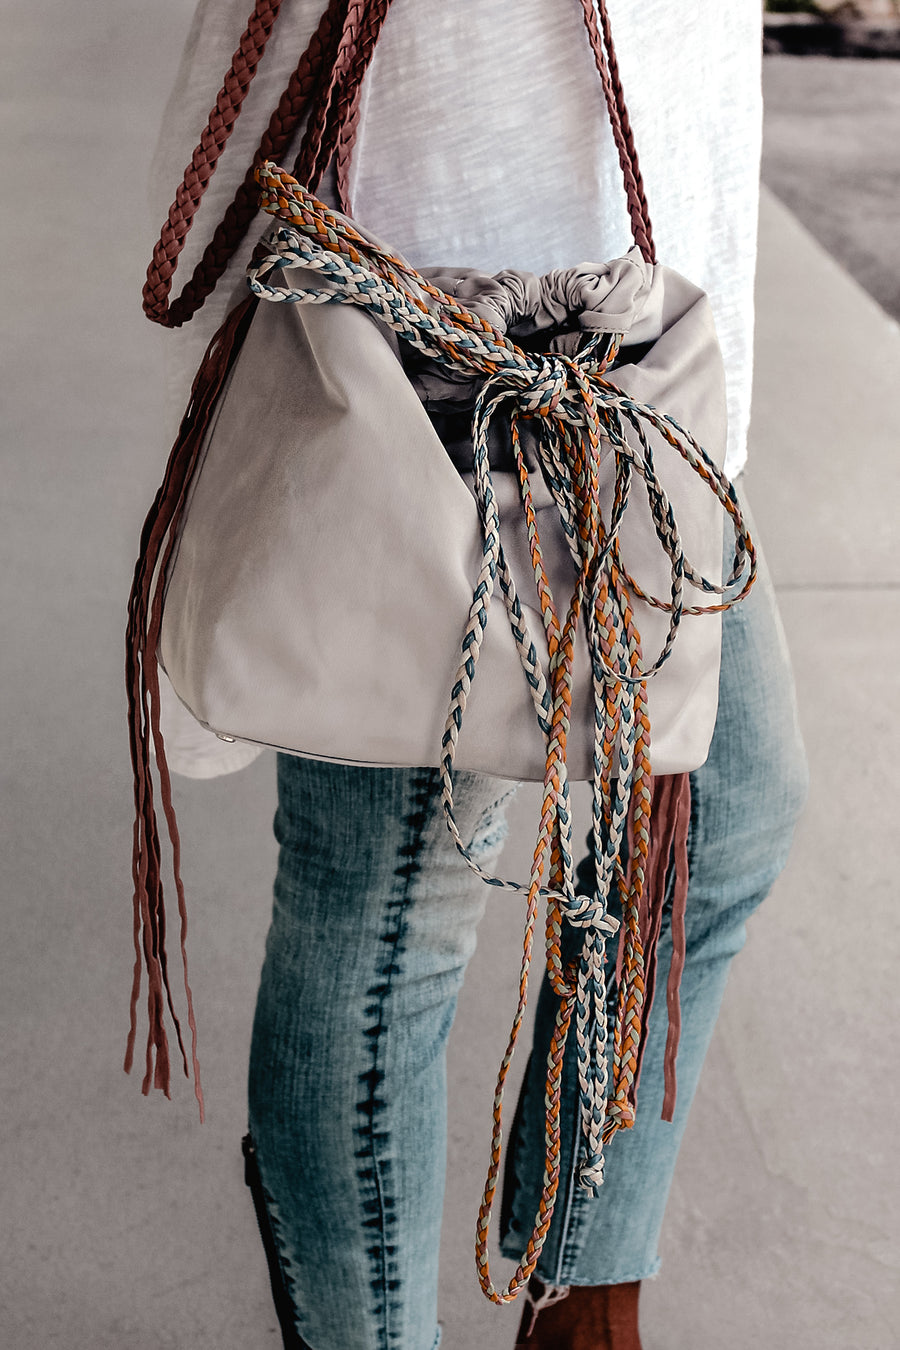 person wearing sporty gray nylon cinch bag with colorful braided leather straps.